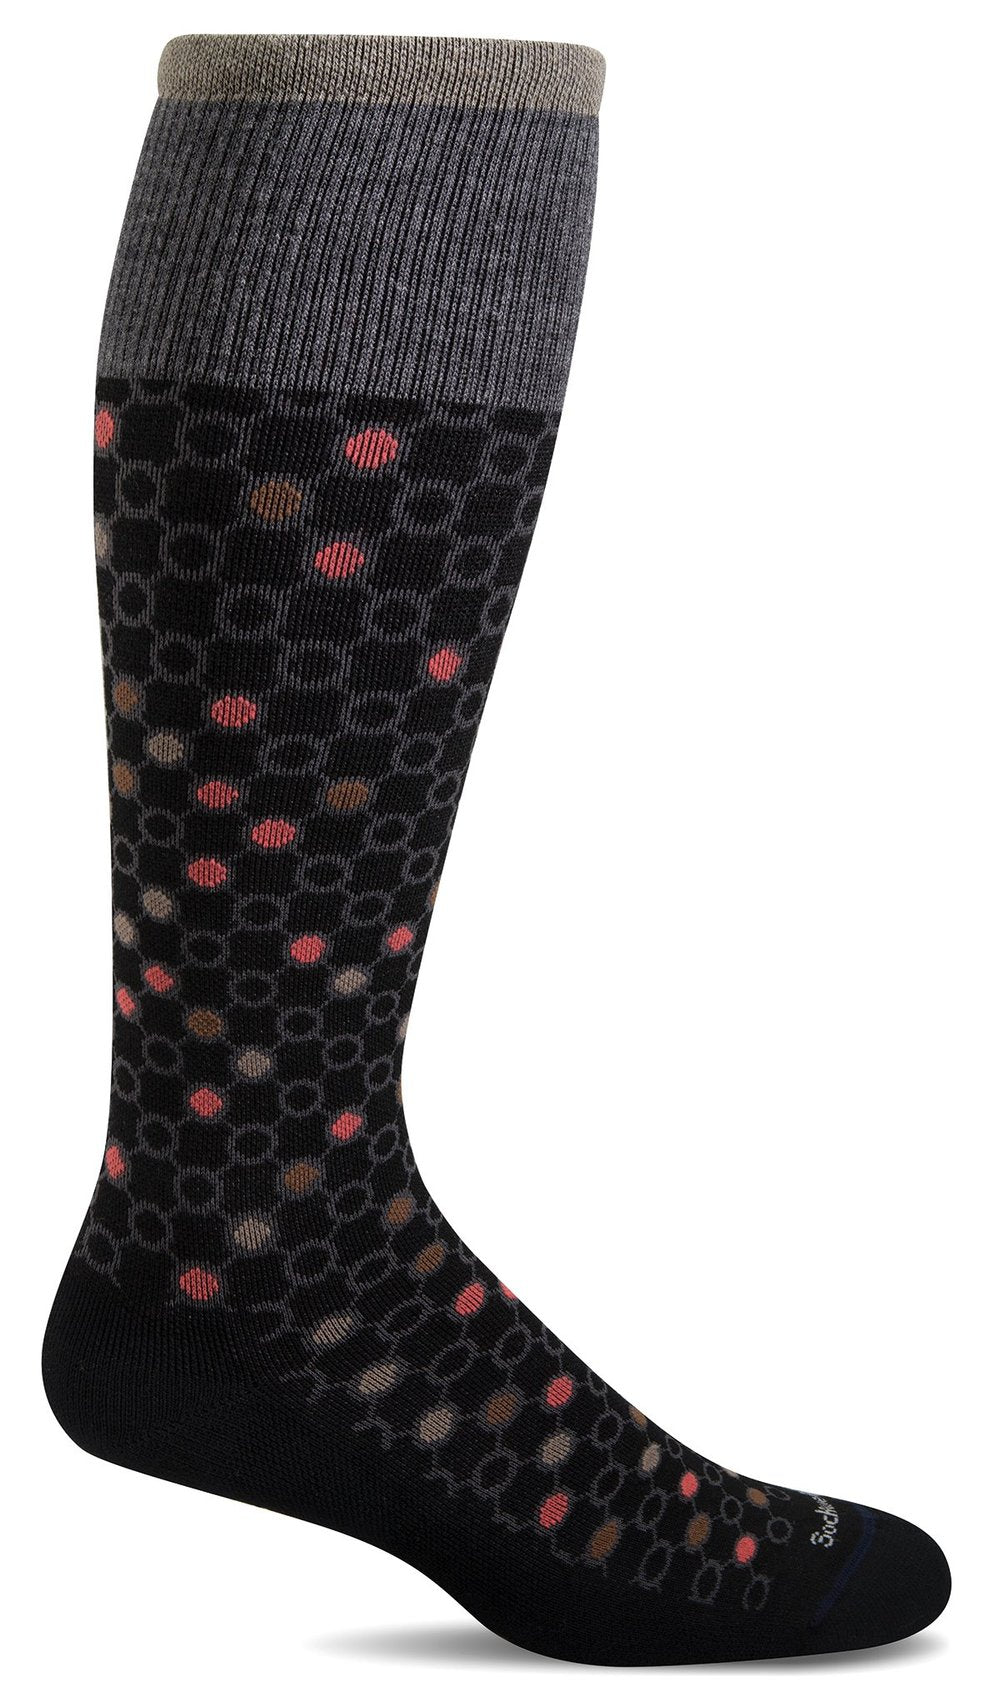 Kinetic - Moderate Compression Socks